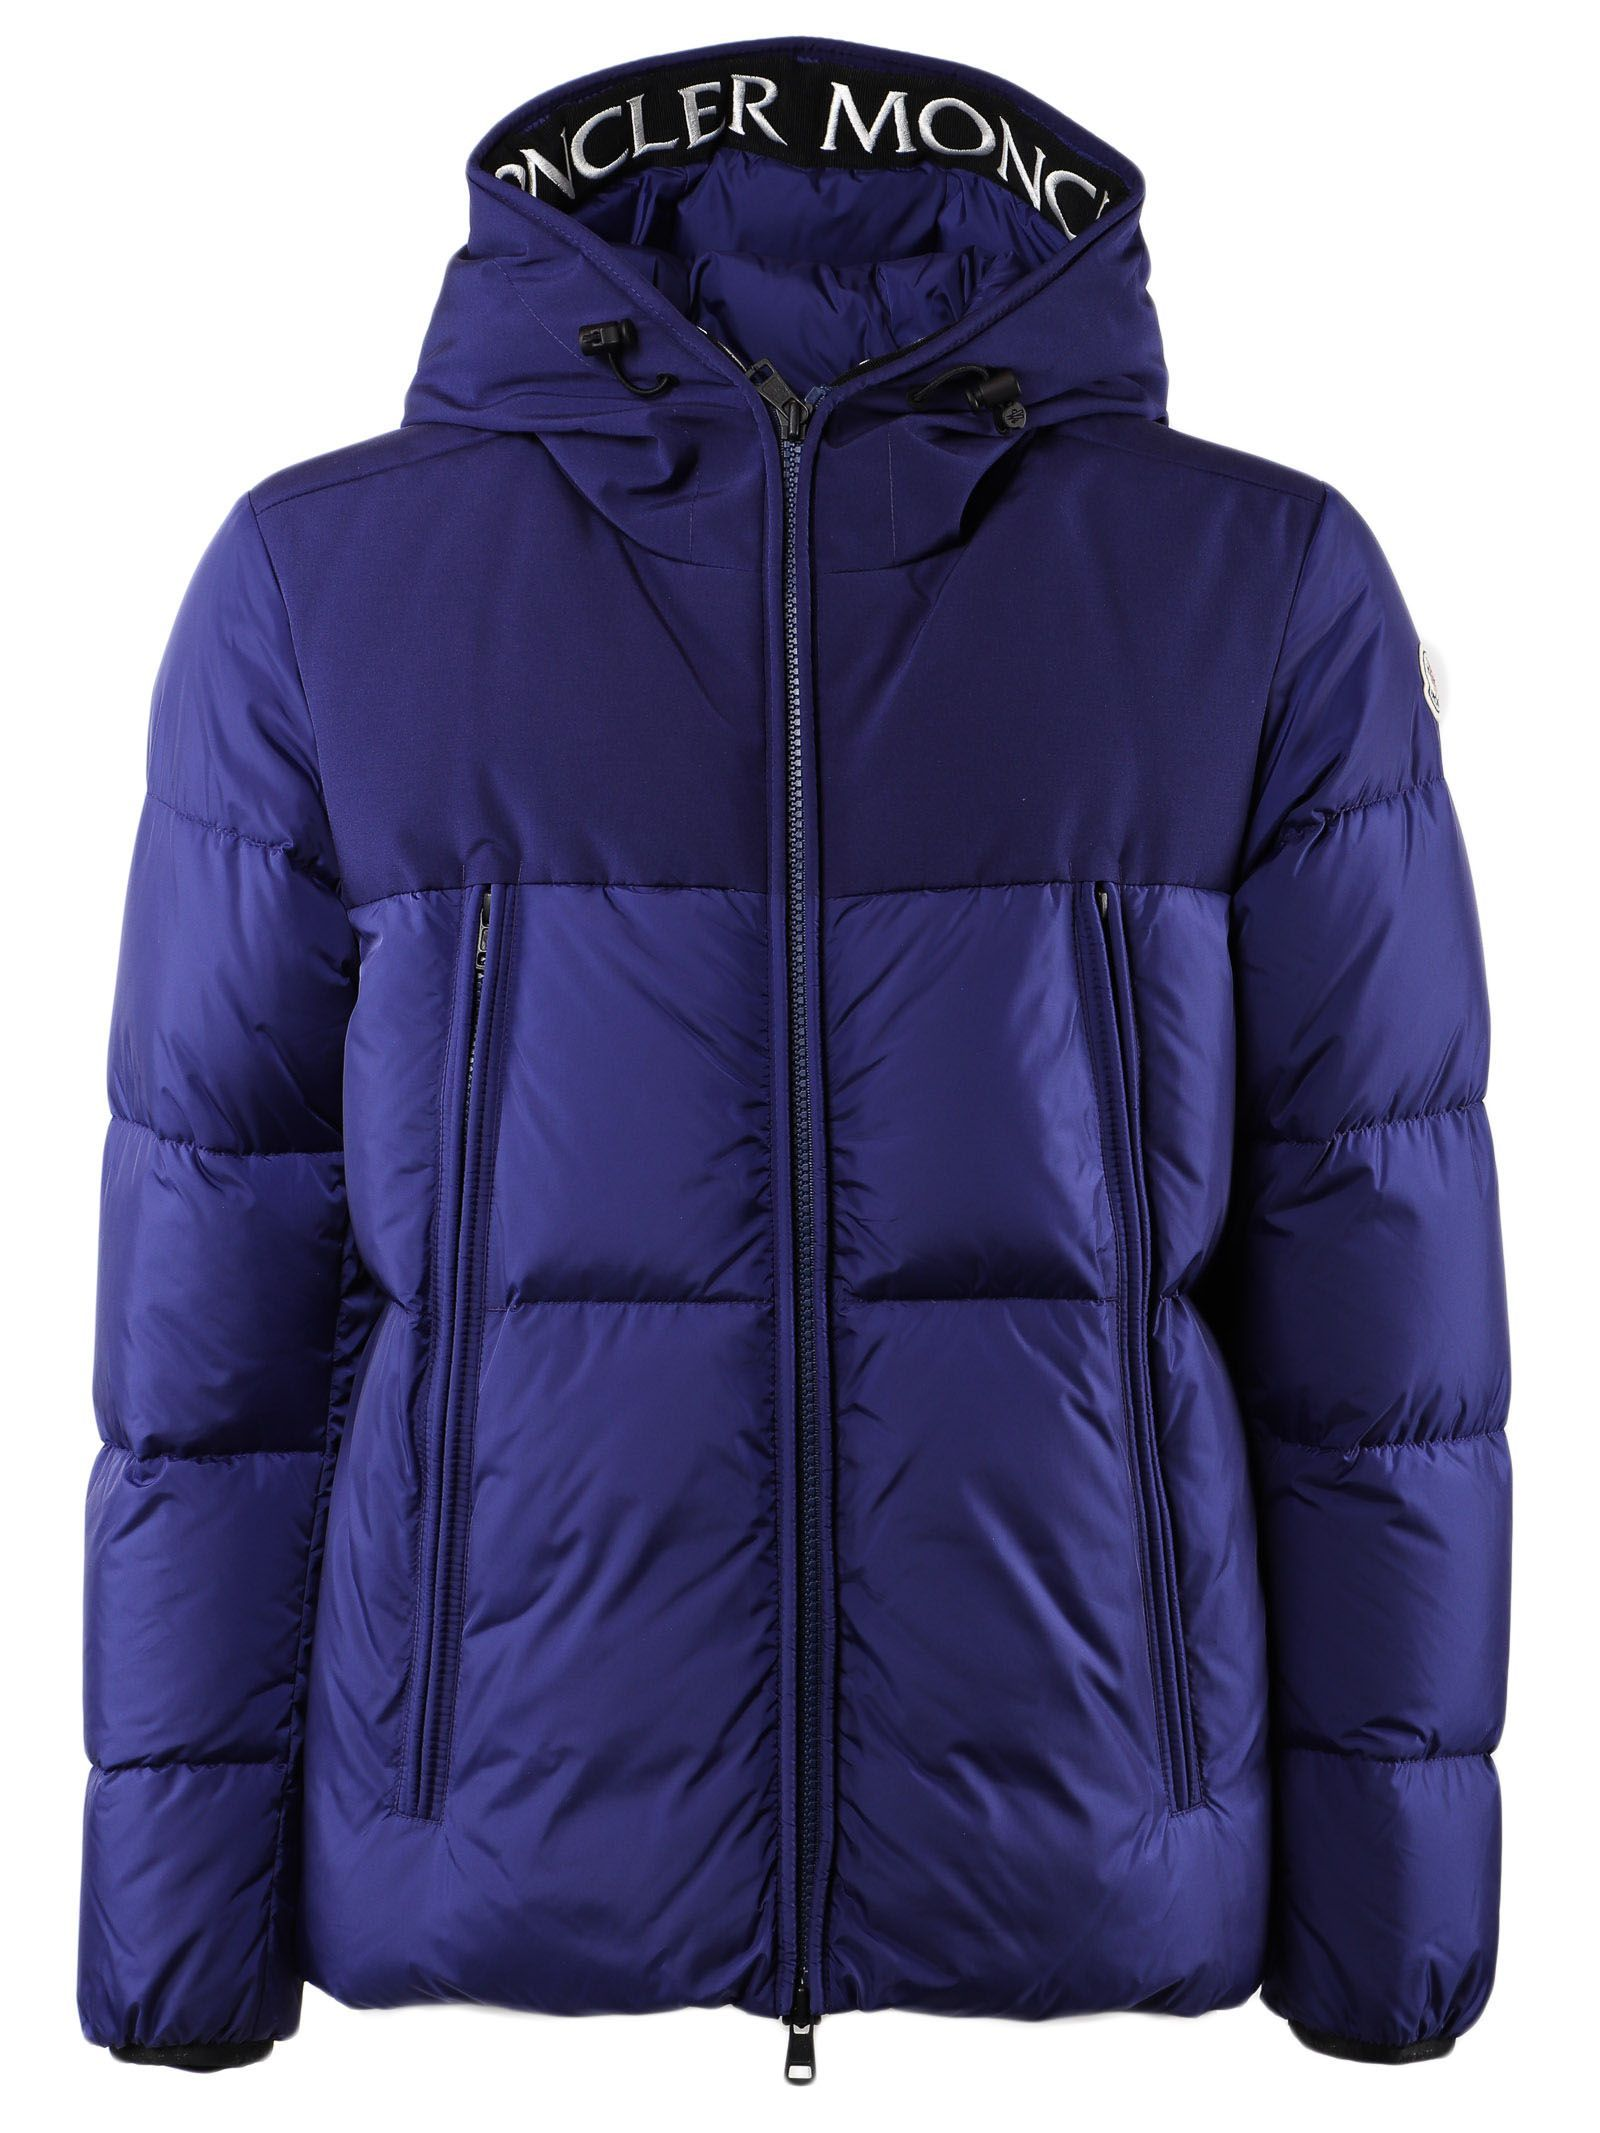 c2cf14790 MONCLER MONTCLAR DOWN JACKET.  moncler  cloth